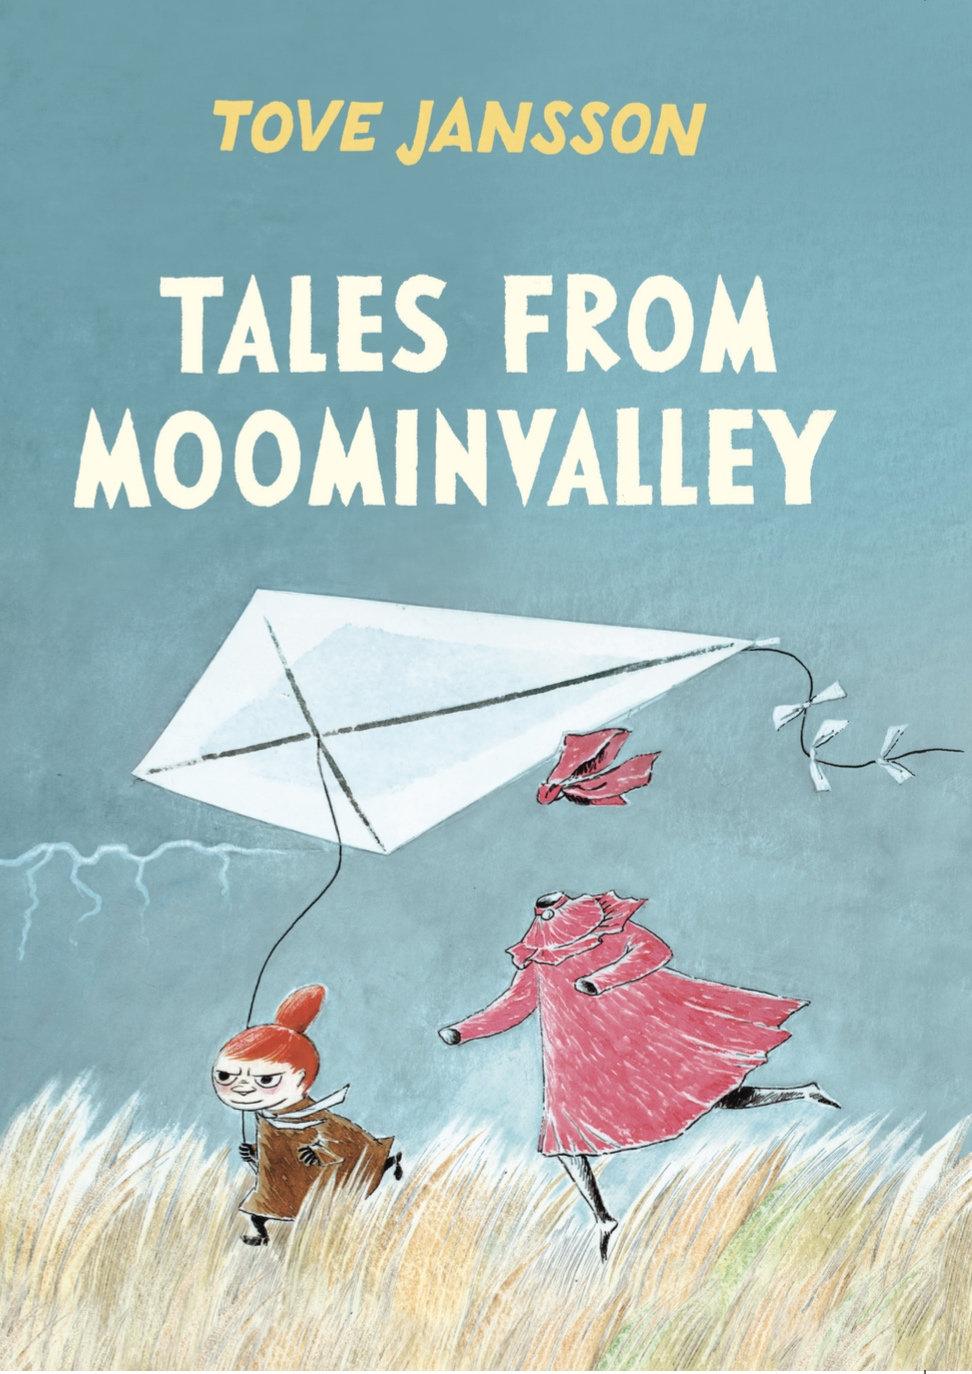 Tove Jansson Tales from Moomin Valley Sort of Books.jpg